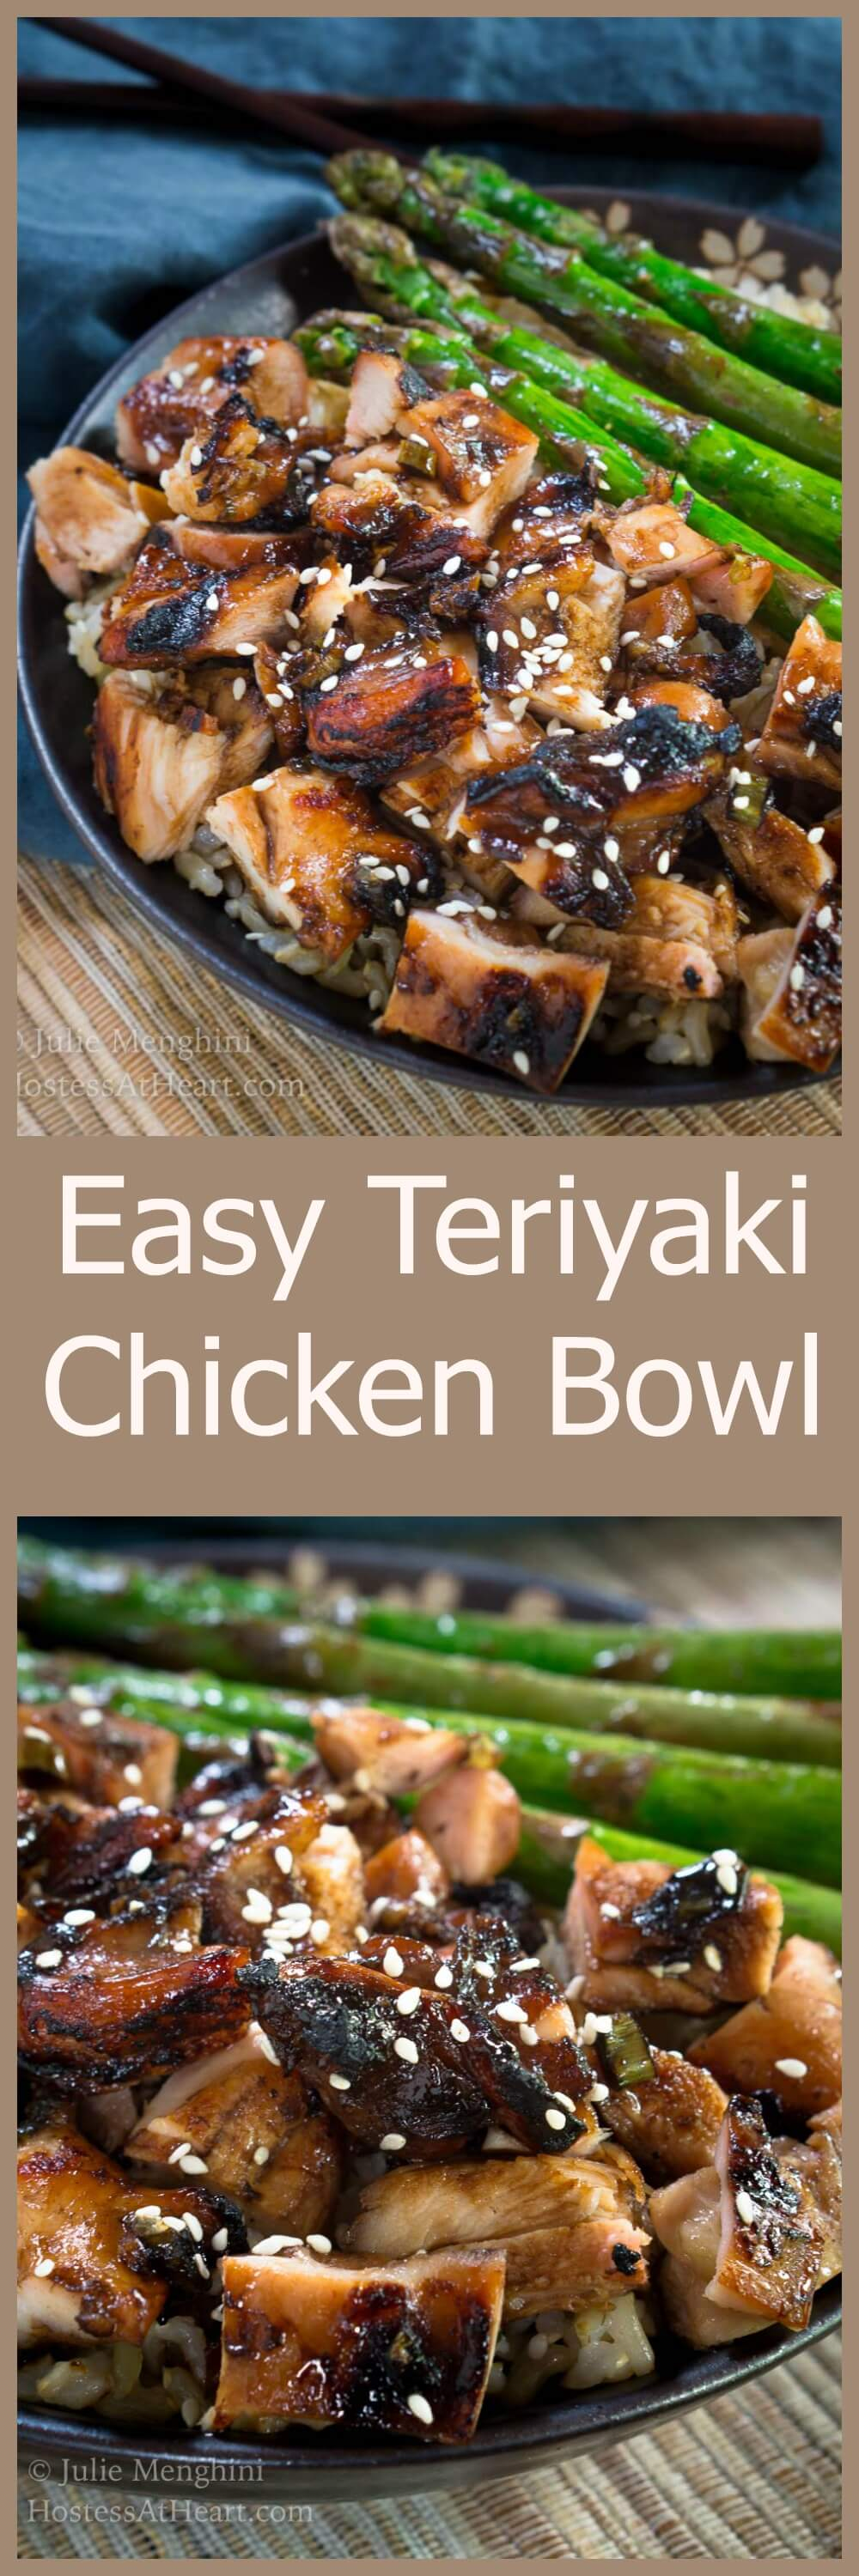 Easy Teriyaki Chicken Bowl Recipe is a rich slightly sweet savory dish that tastes better than takeout. HostessAtHeart.com